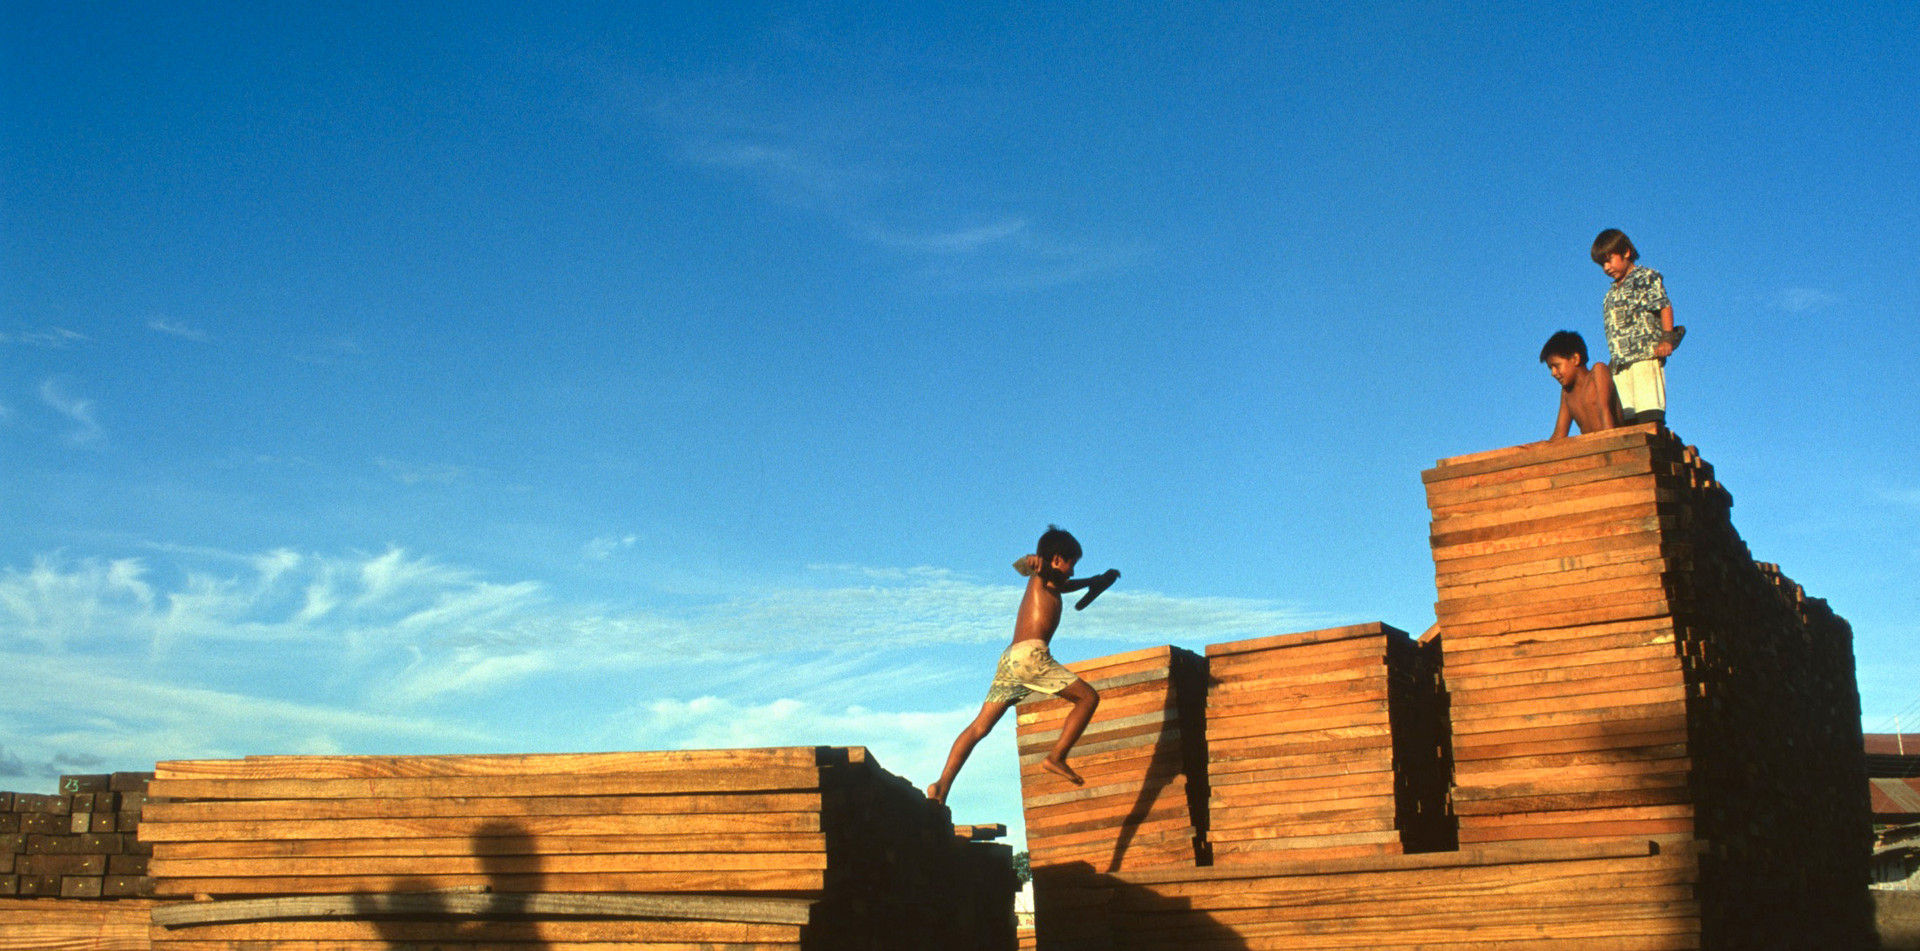 Jumping on hardwood in the Bolivian Amazon